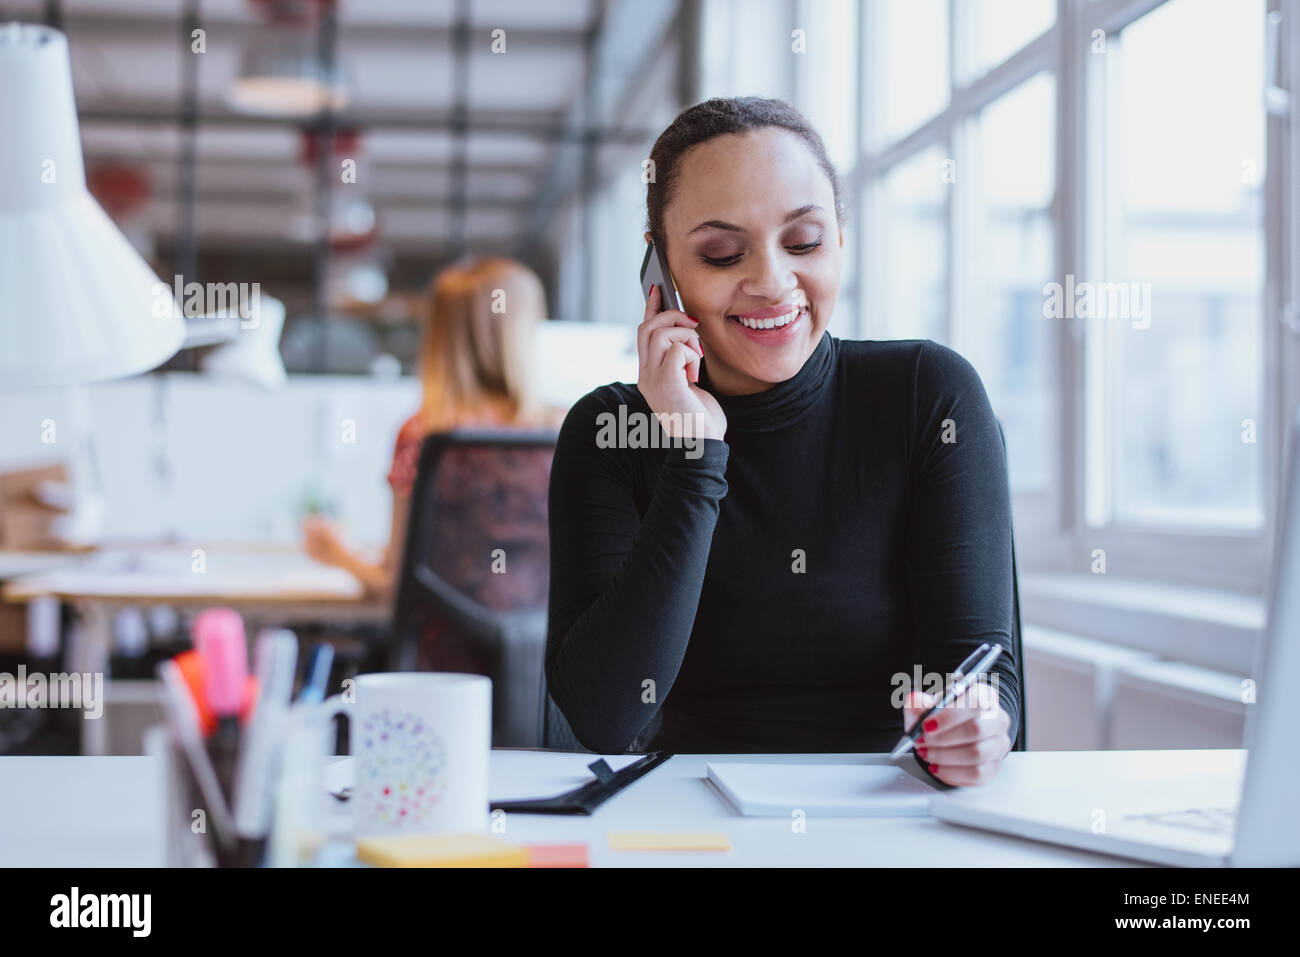 Happy young woman sitting at her desk working and answering a phone call. - Stock Image